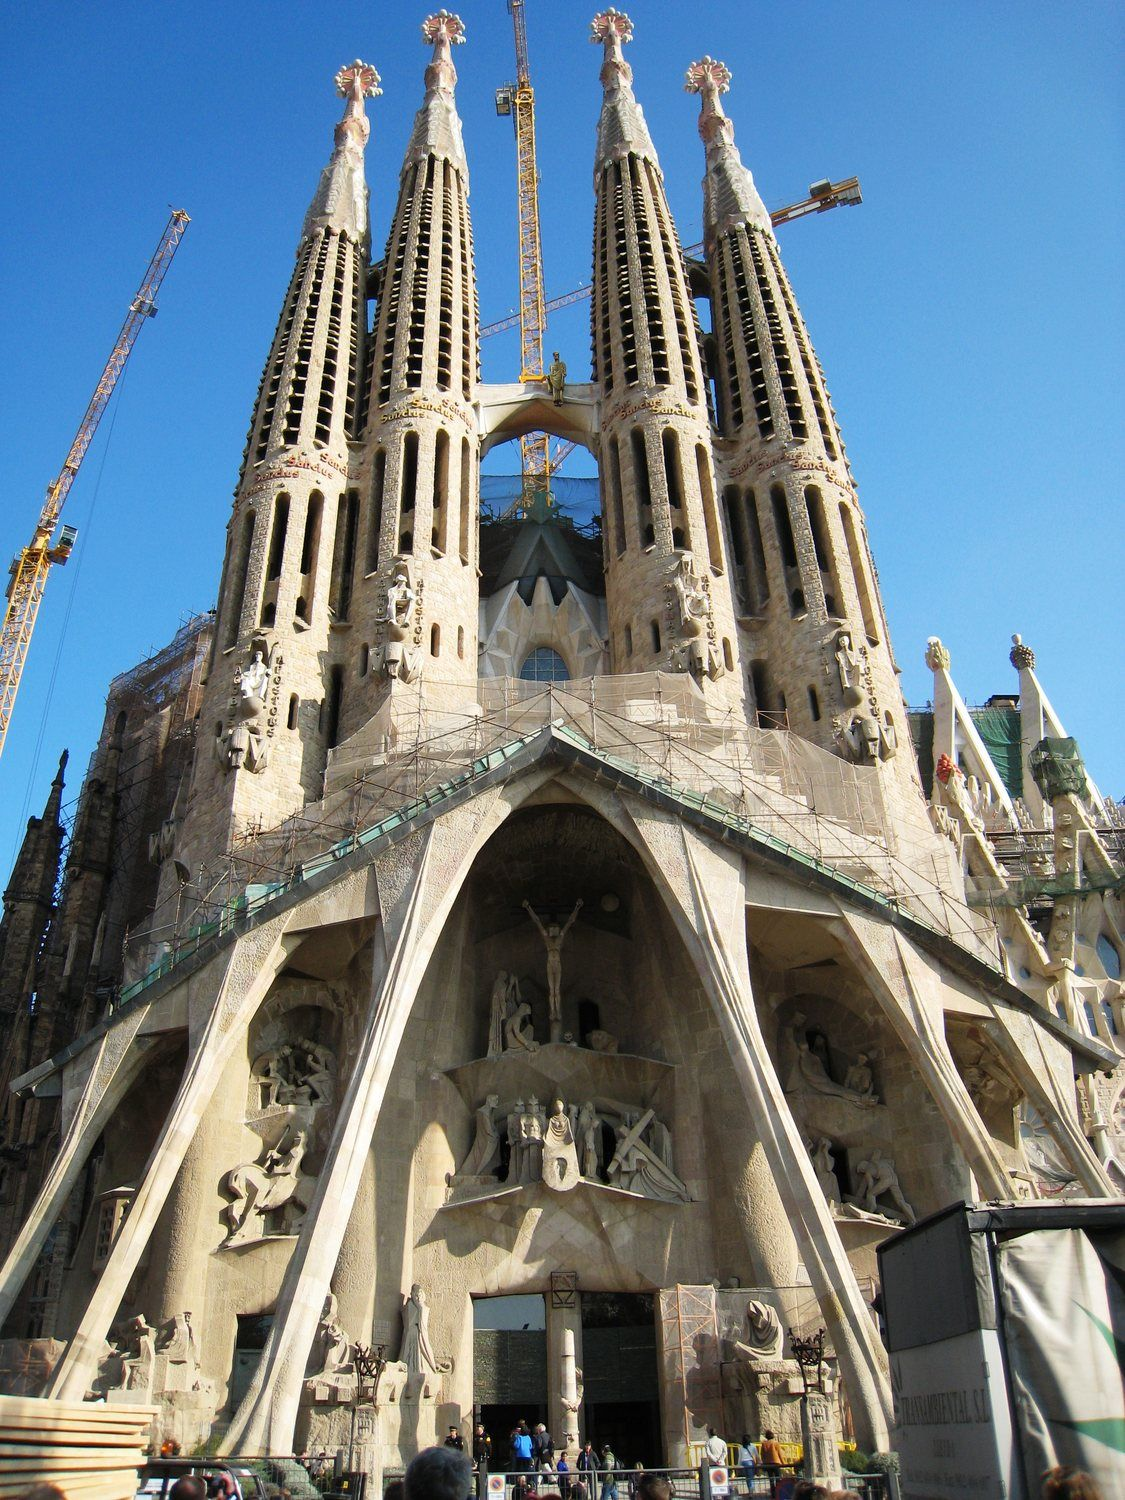 One Of Spains Most Famous Landmarks The Sagrada Familia Cathedral In Barcelona Catalonia Designed By Antoni Gaudi Construction Began 1882 And Is